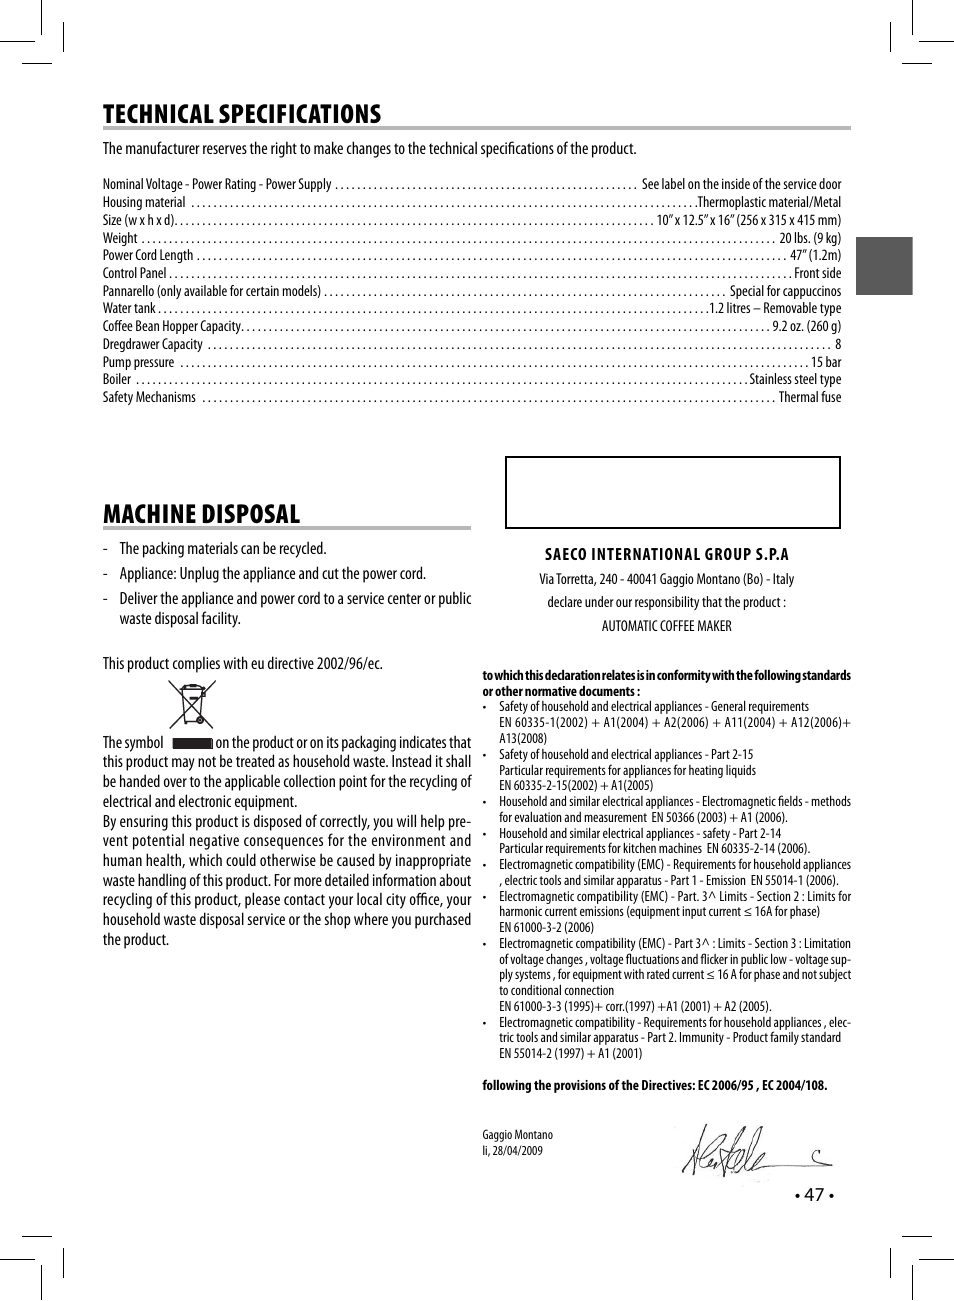 Technical specifications, Machine disposal, Sup 037dr | Philips Saeco Syntia  Kaffeevollautomat User Manual |